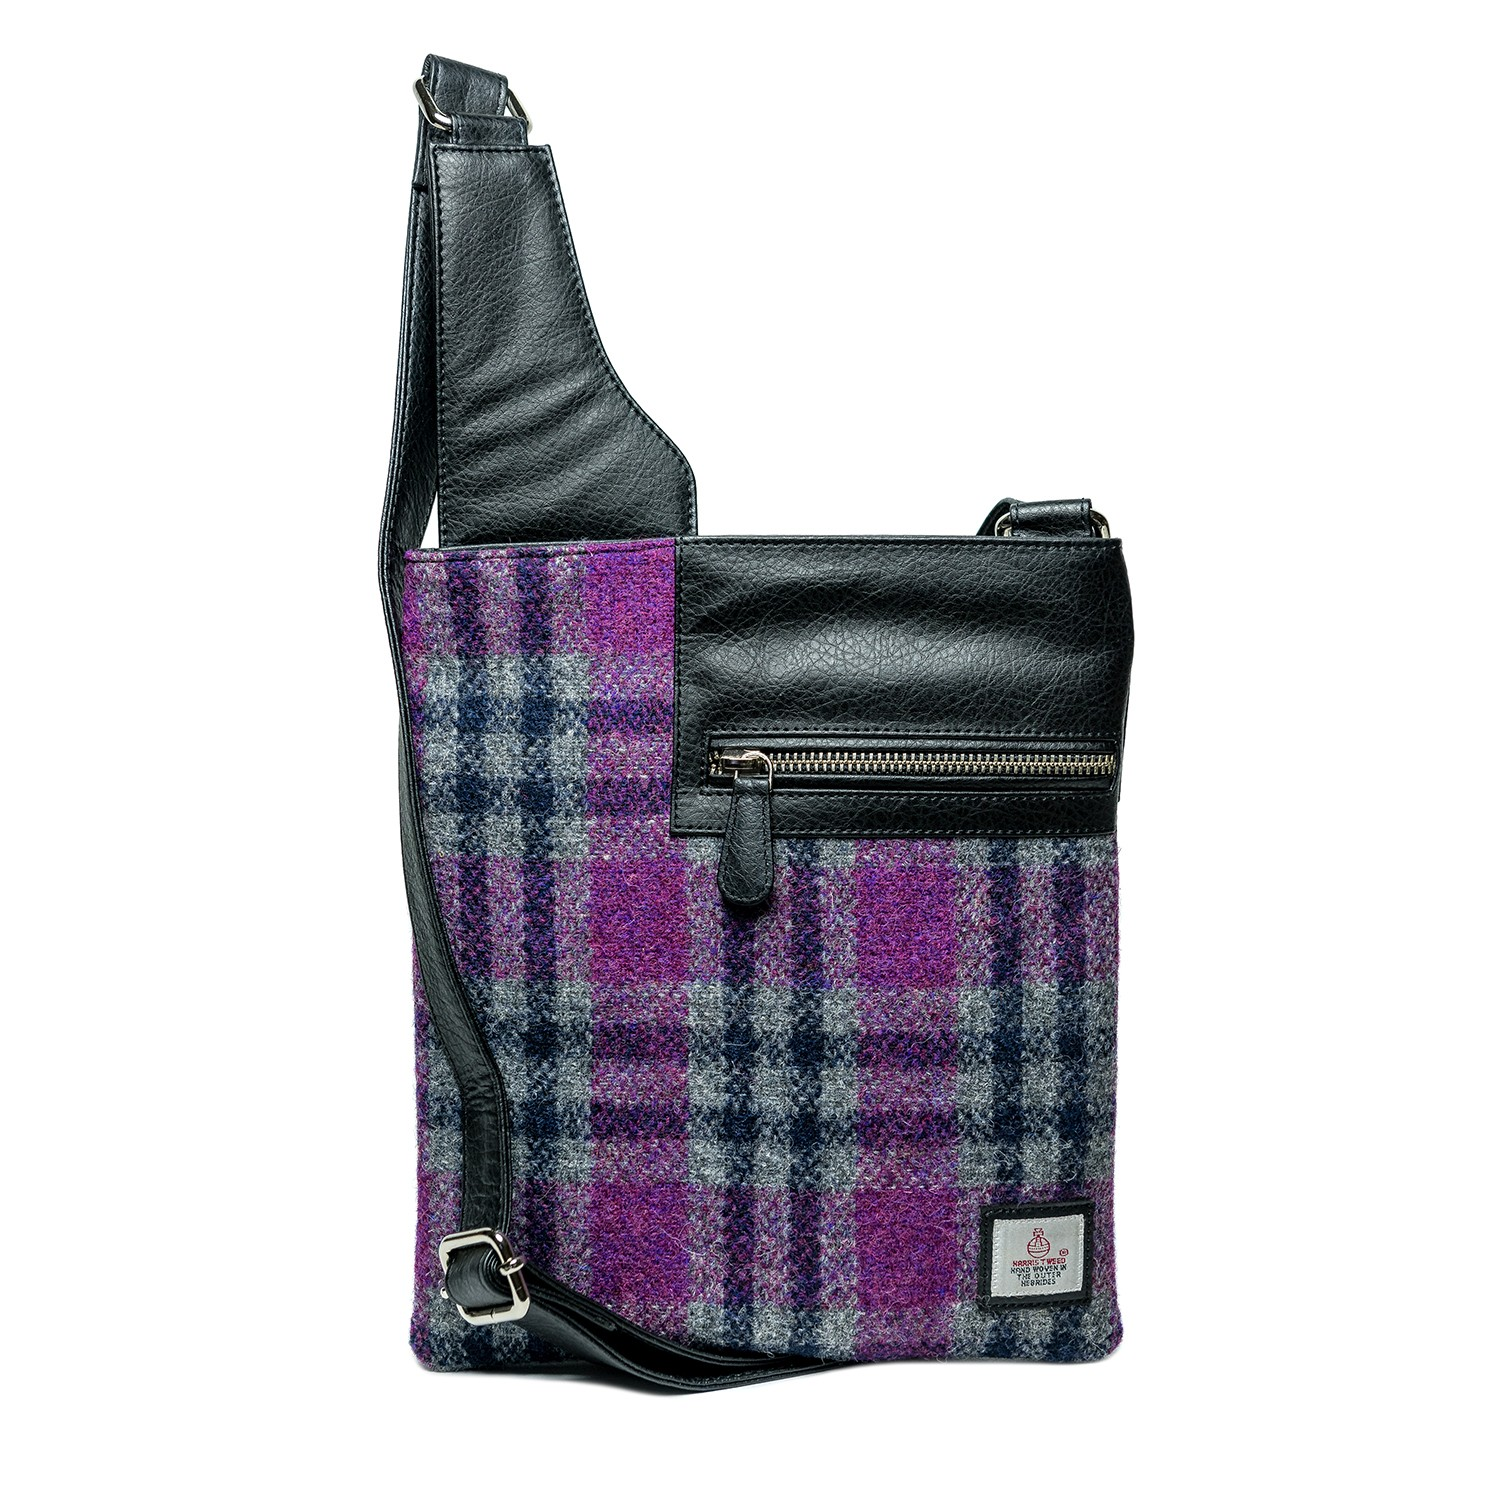 Maccessori Harris Tweed Medium Cross Body Bag in Pink Check